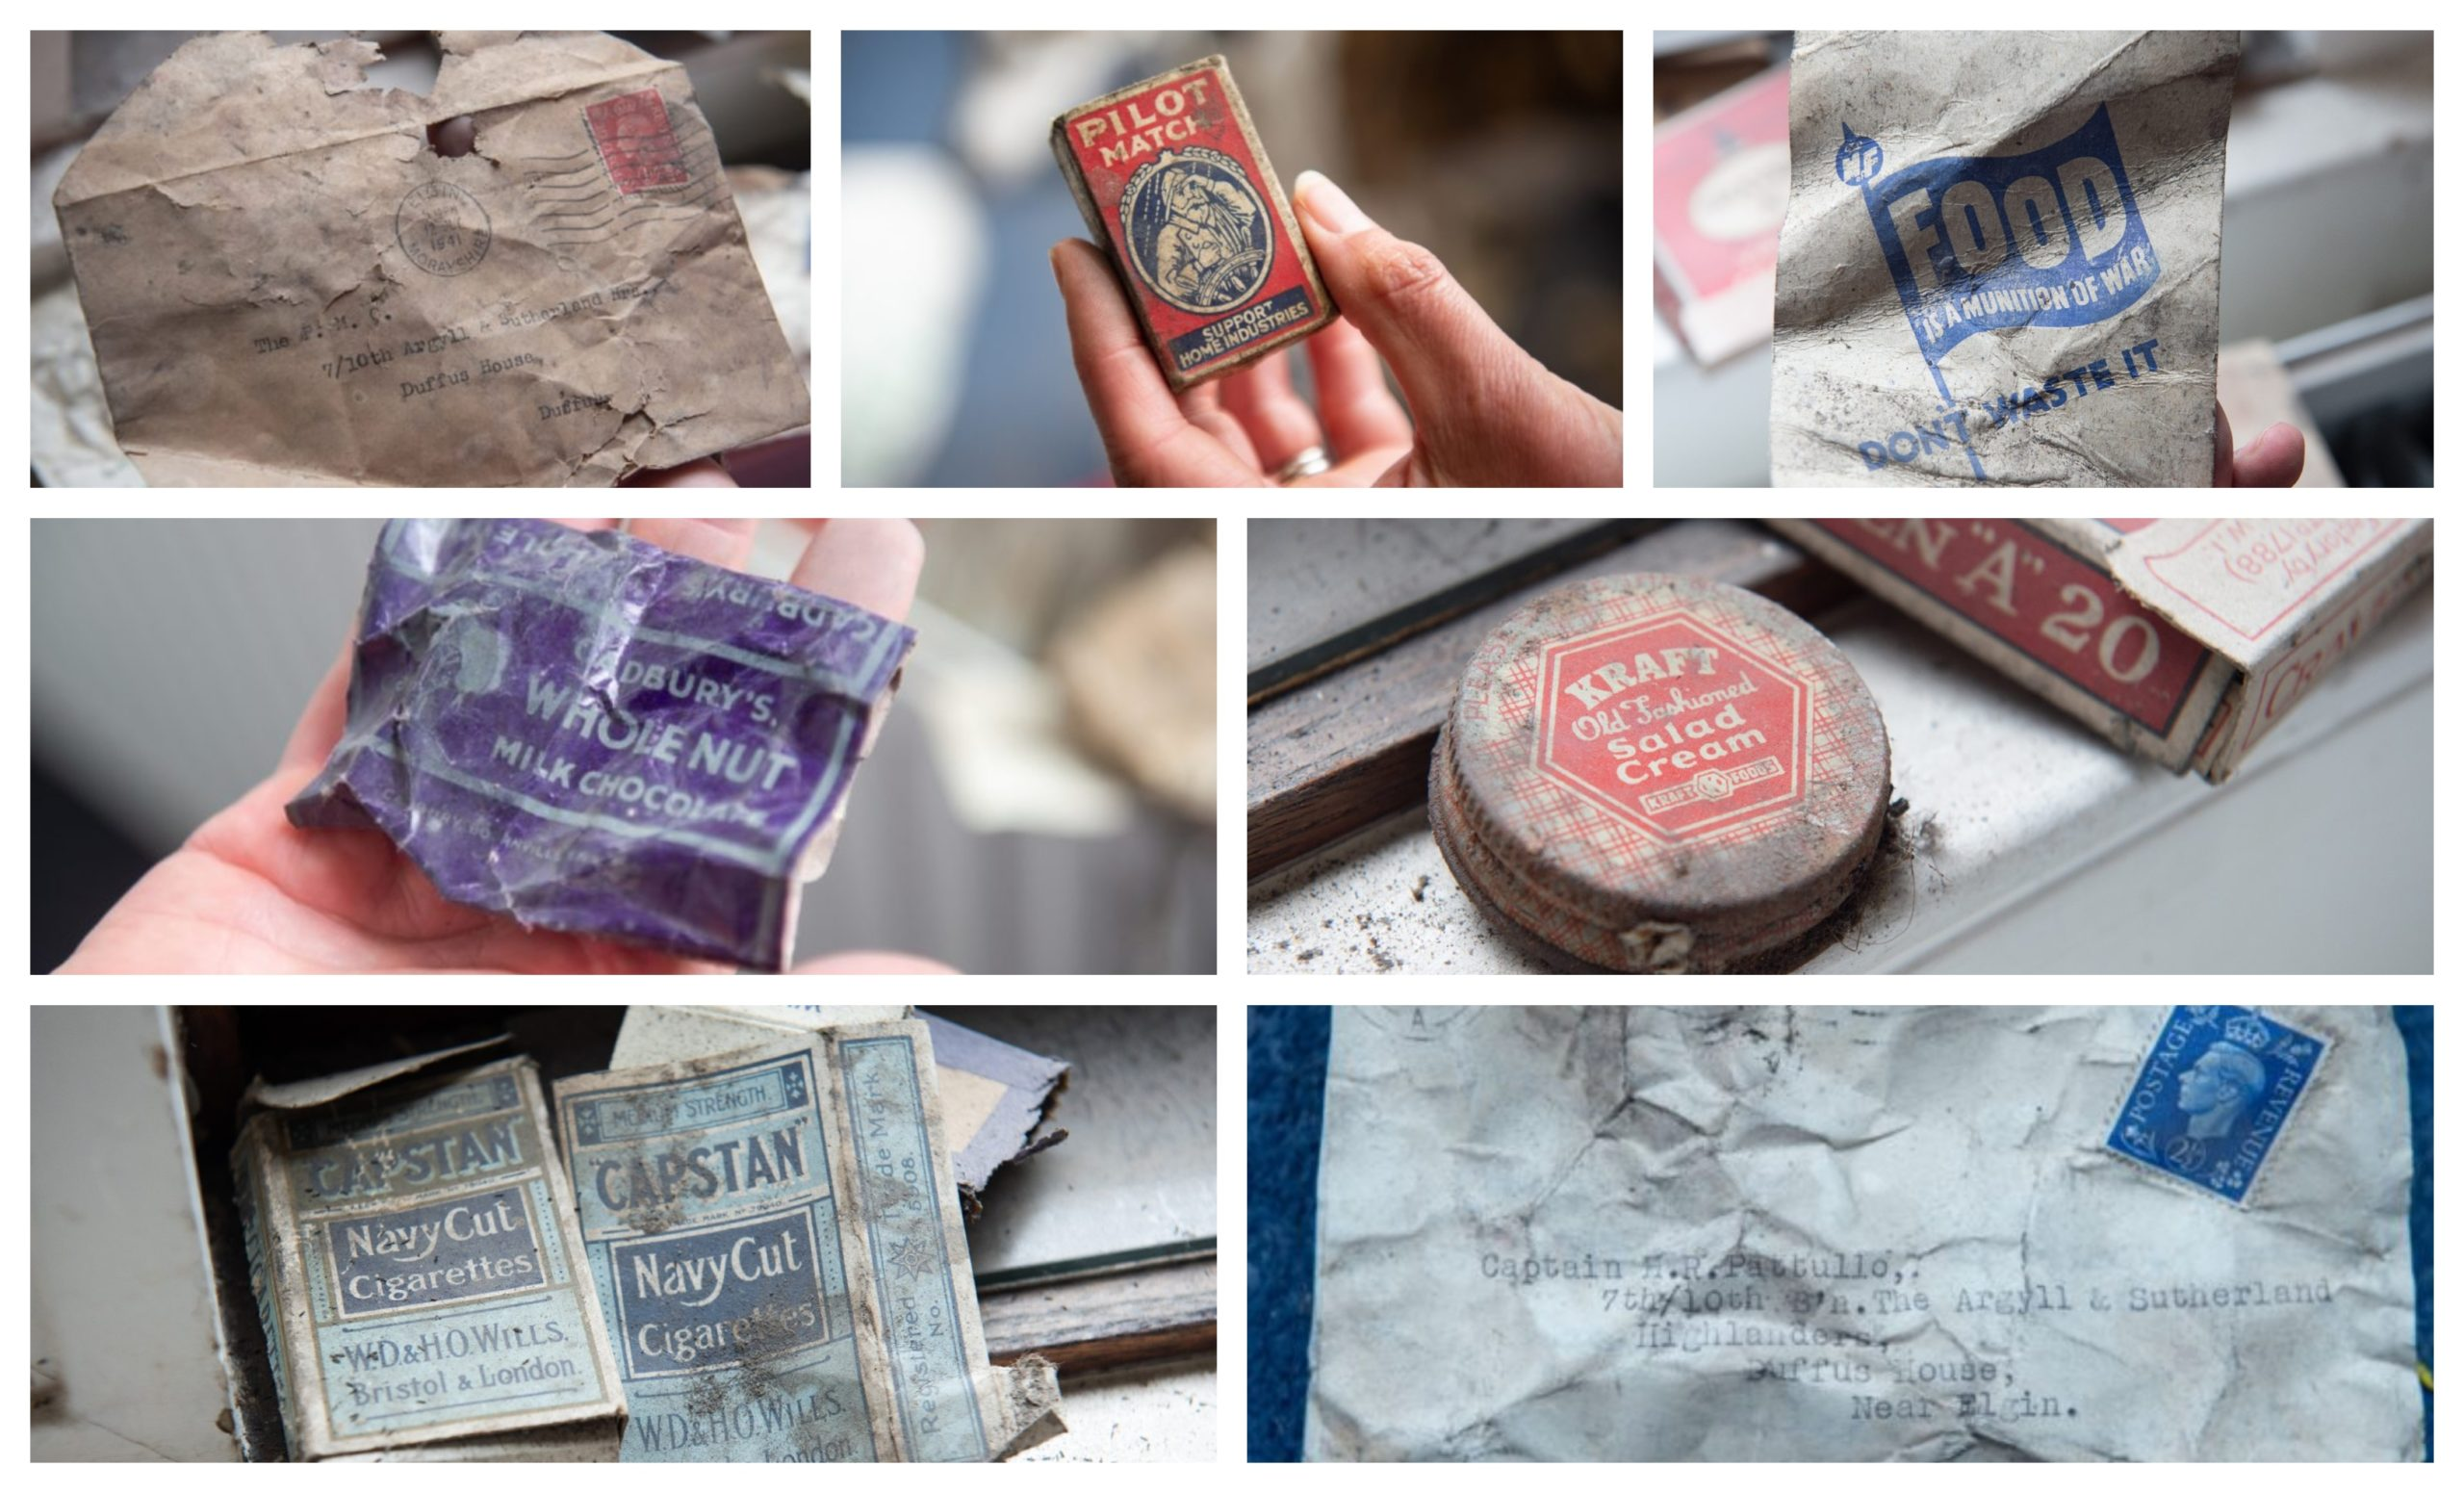 Secret messages, chocolate bar wrappers and cigarette packets were found under the floorboards at Duffus House. Pictures by Jason Hedges.